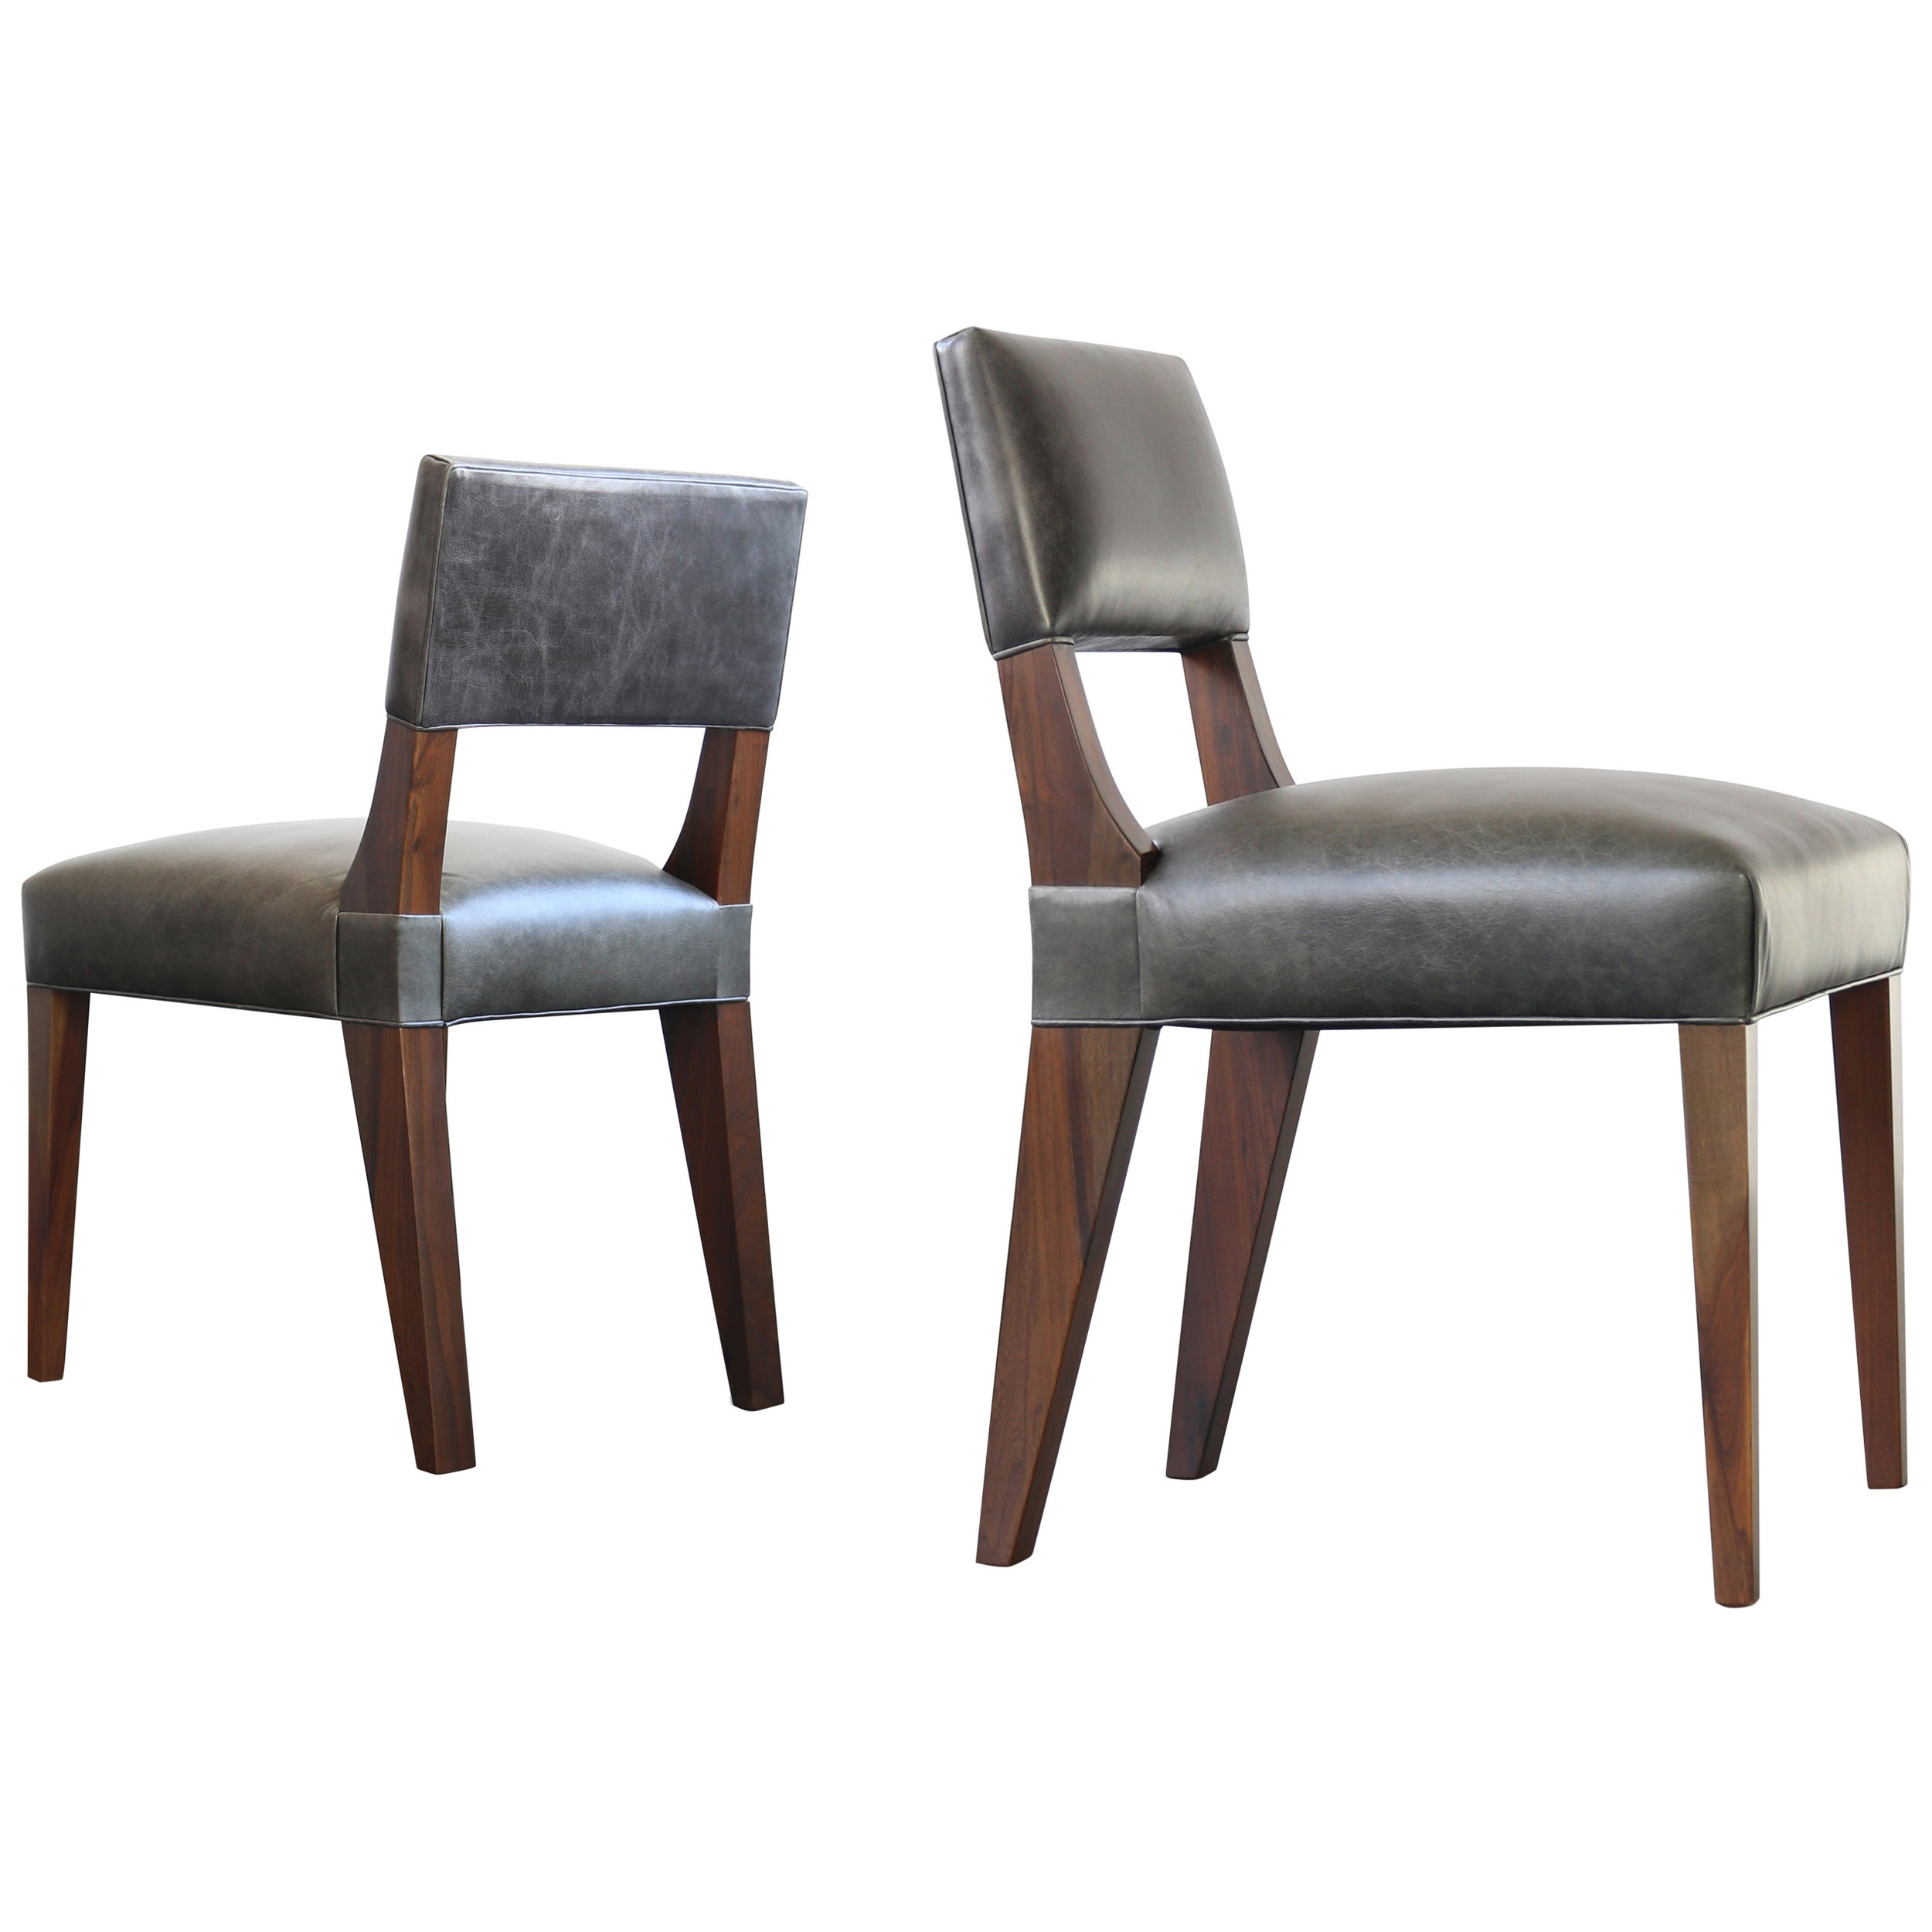 Bruno Modern Dining Chair in Argentine Rosewood and Leather from Costantini